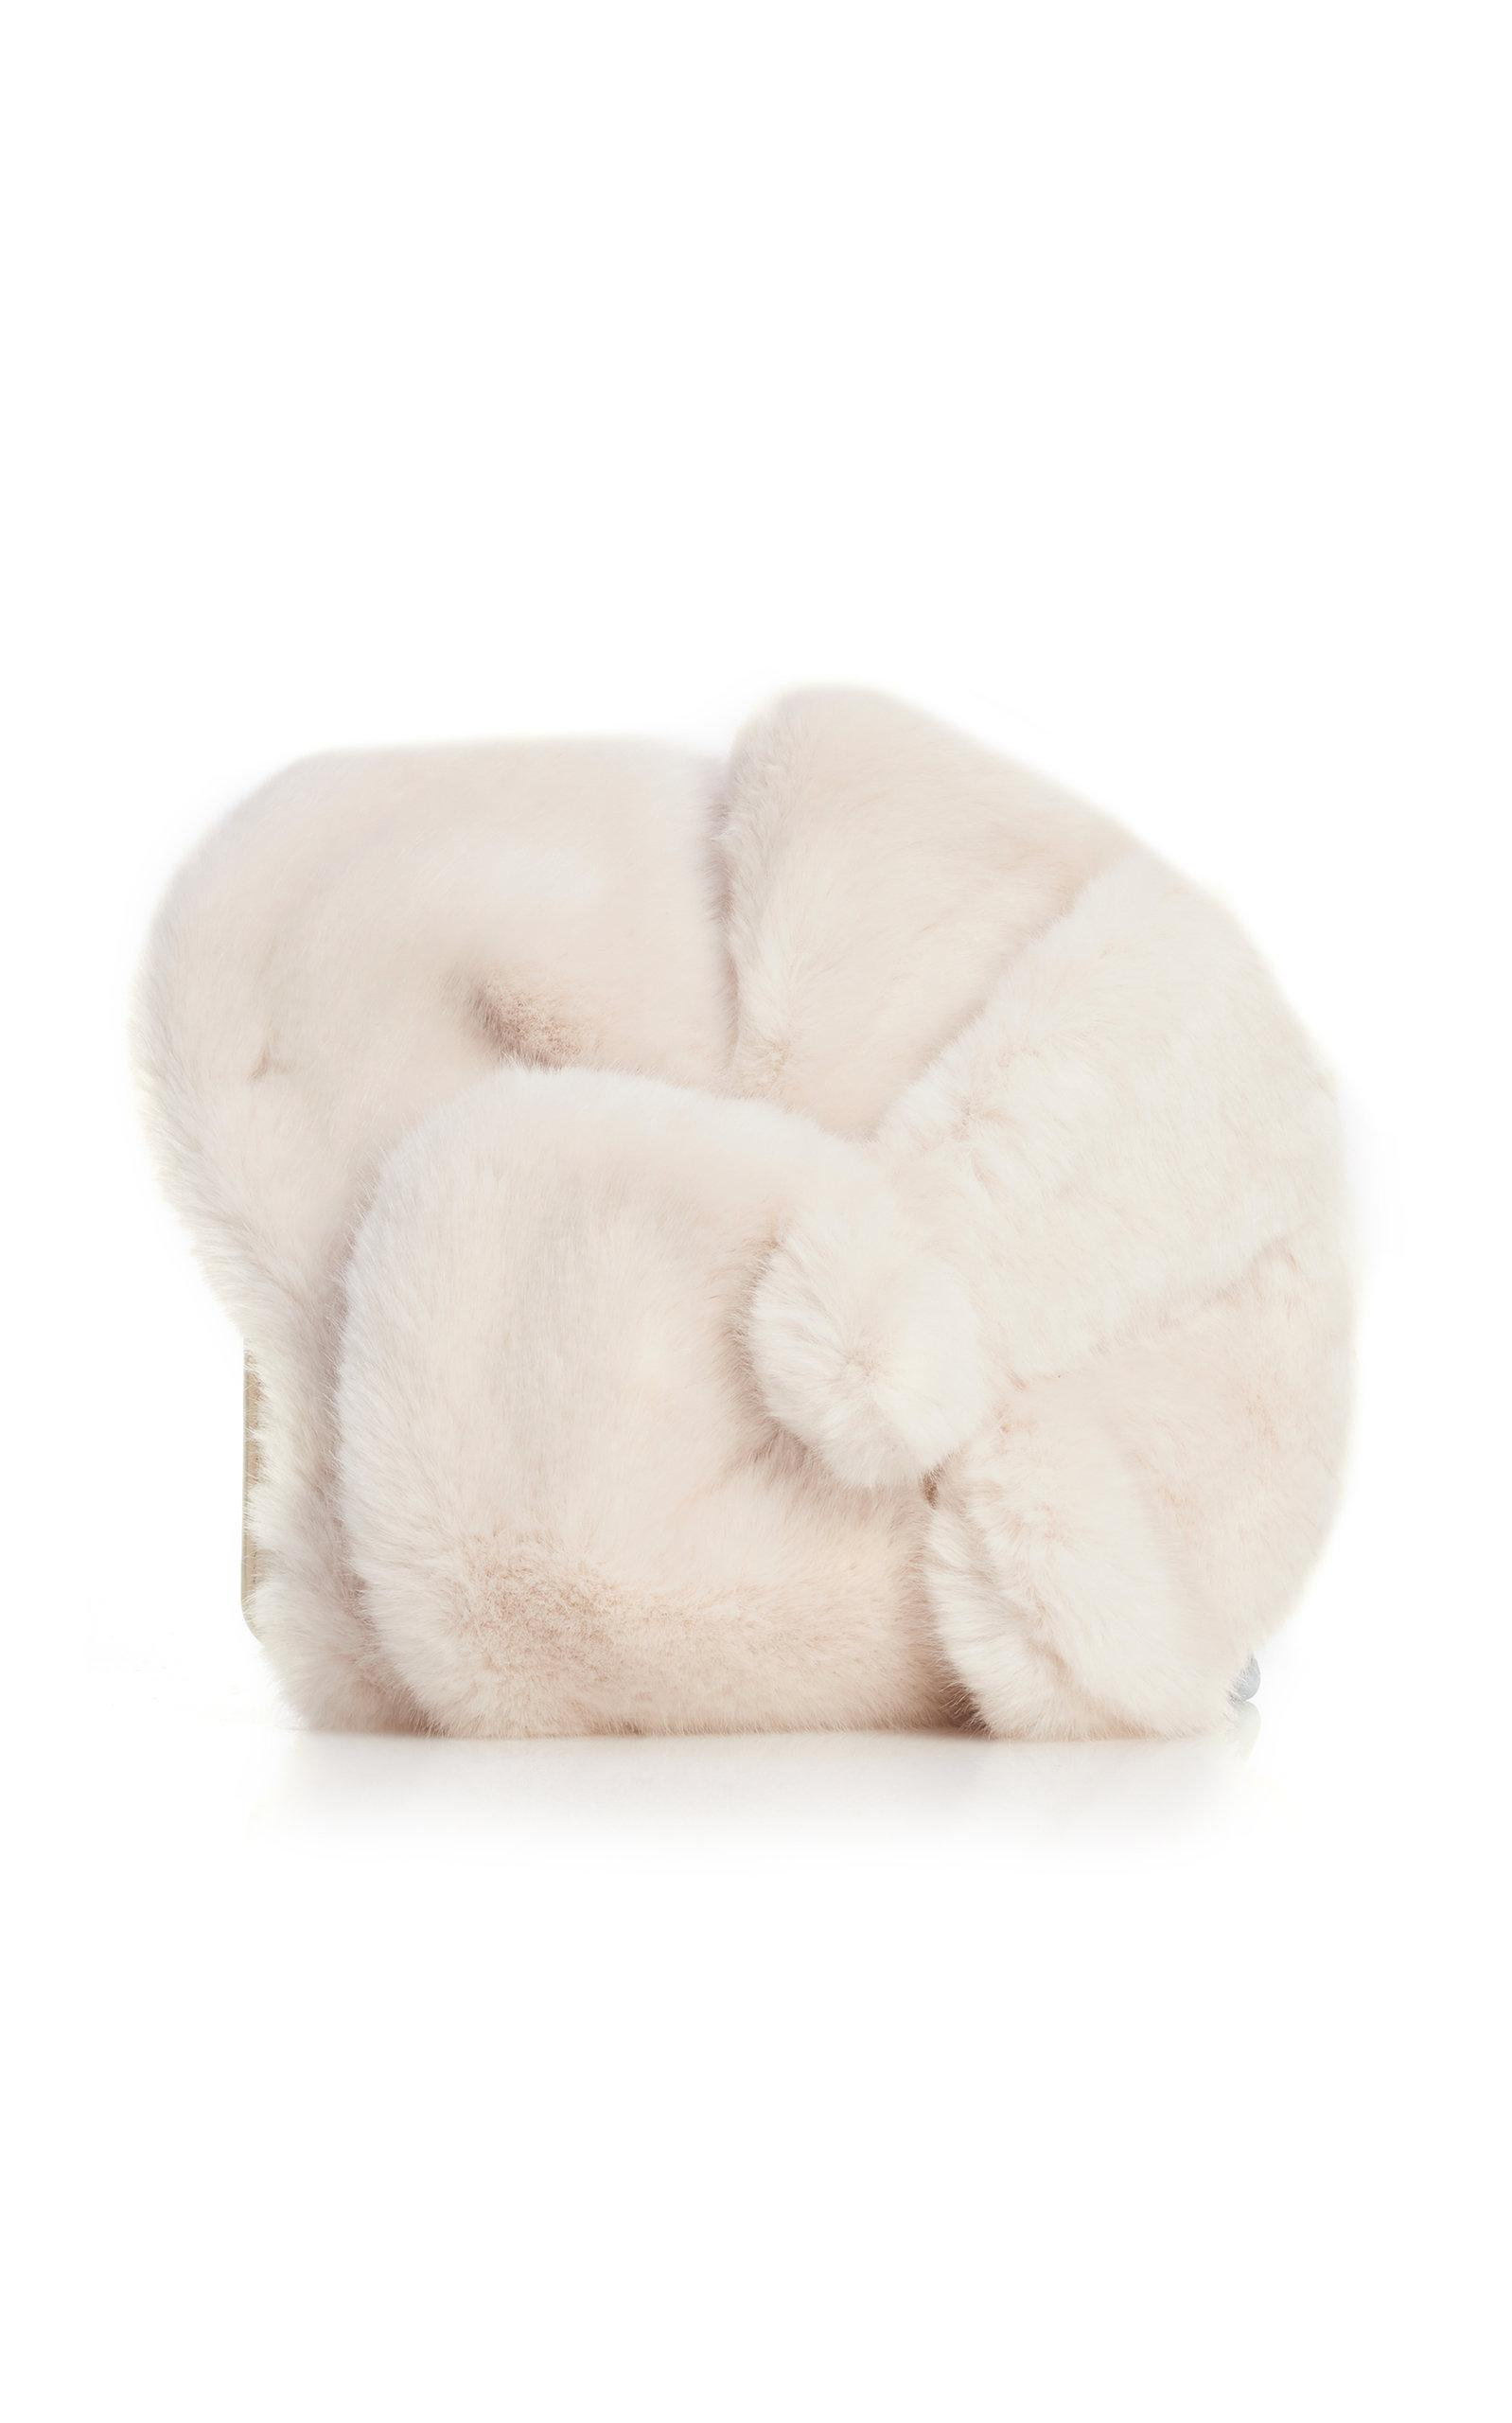 Lotus Faux Fur Clutch Delpozo From China 2018 Online YTCK05o